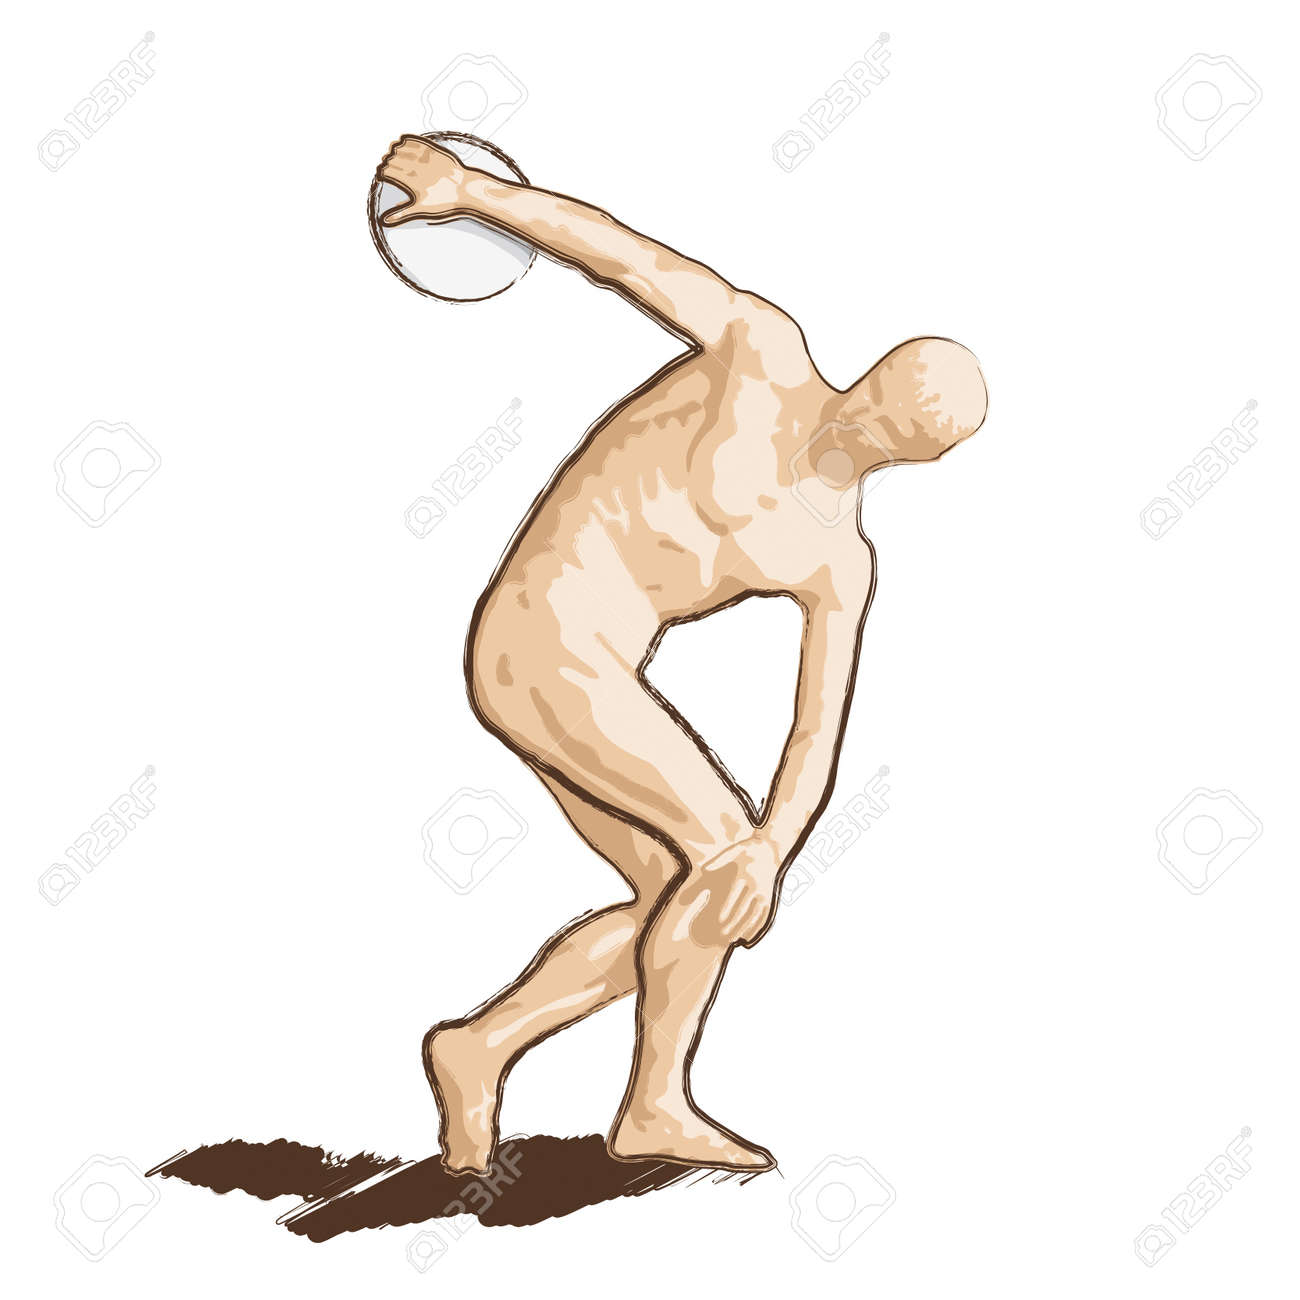 discus thrower Stock Vector - 10590353